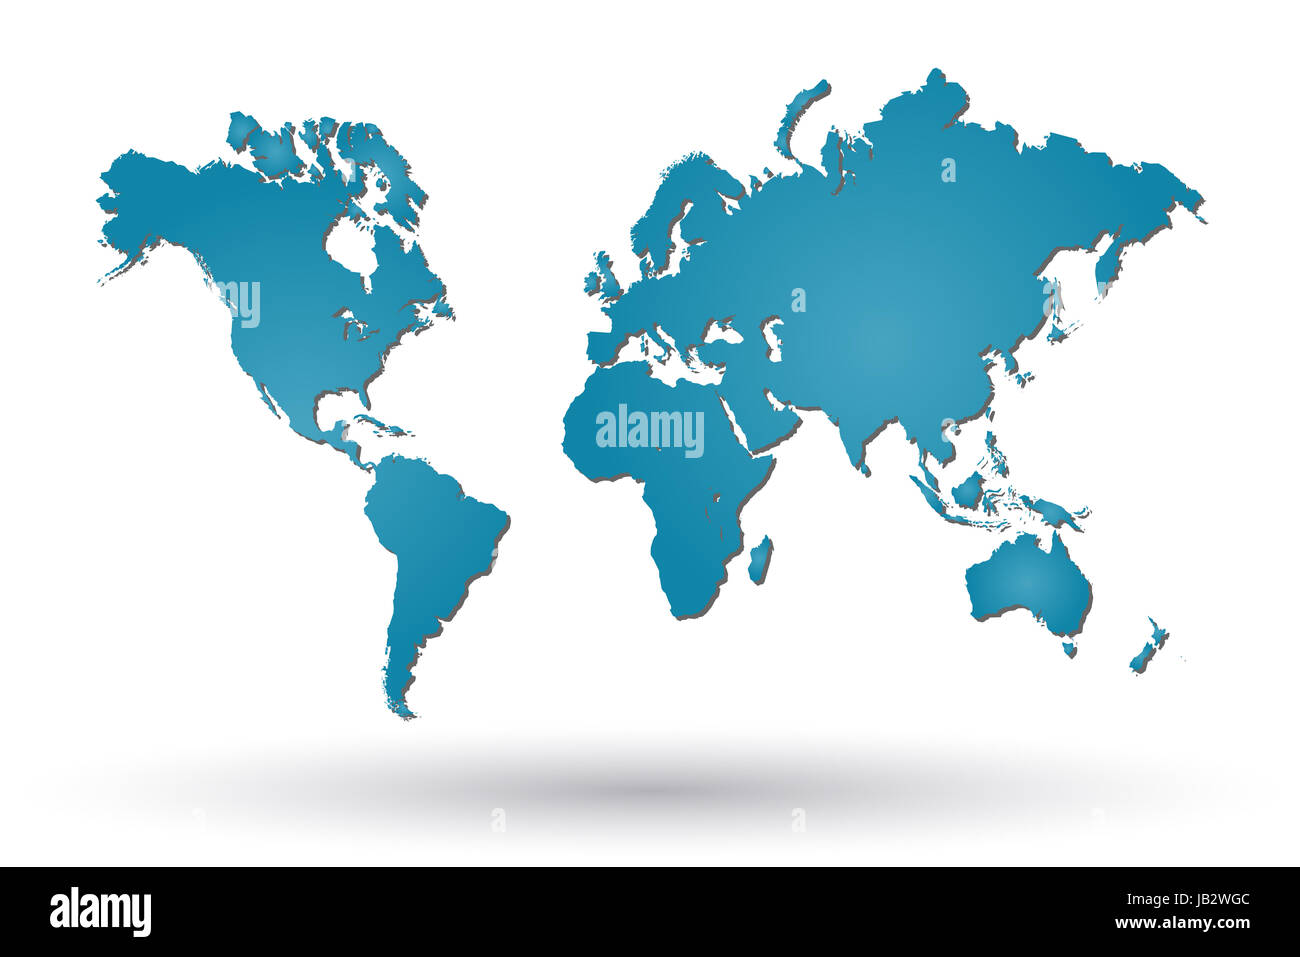 Europe Capitals Map Cut Out Stock Images & Pictures - Alamy